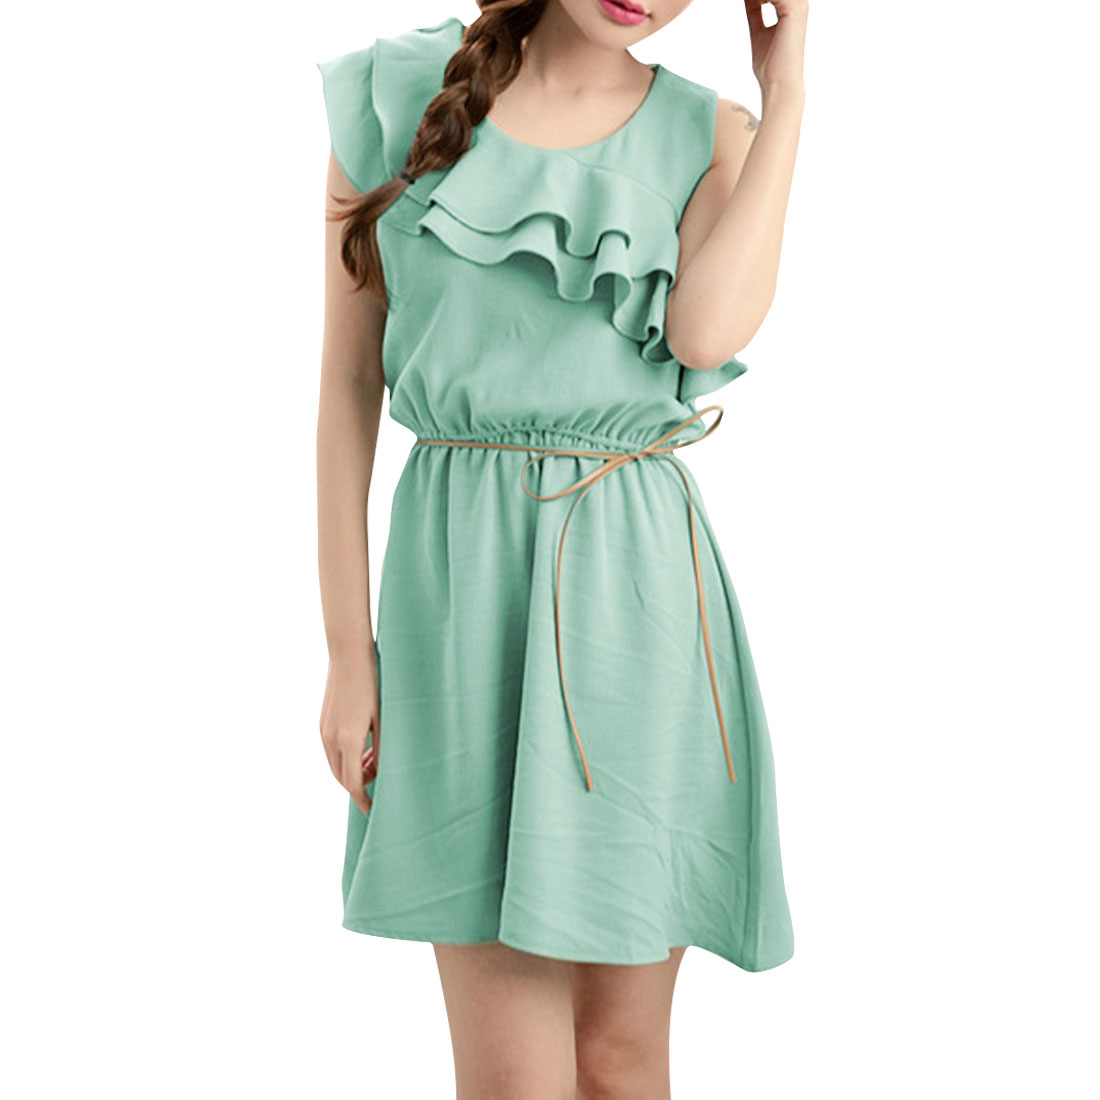 Woman Chic Mint Color Scoop Neck Sleeveless Elastic Waist Mini Dress S